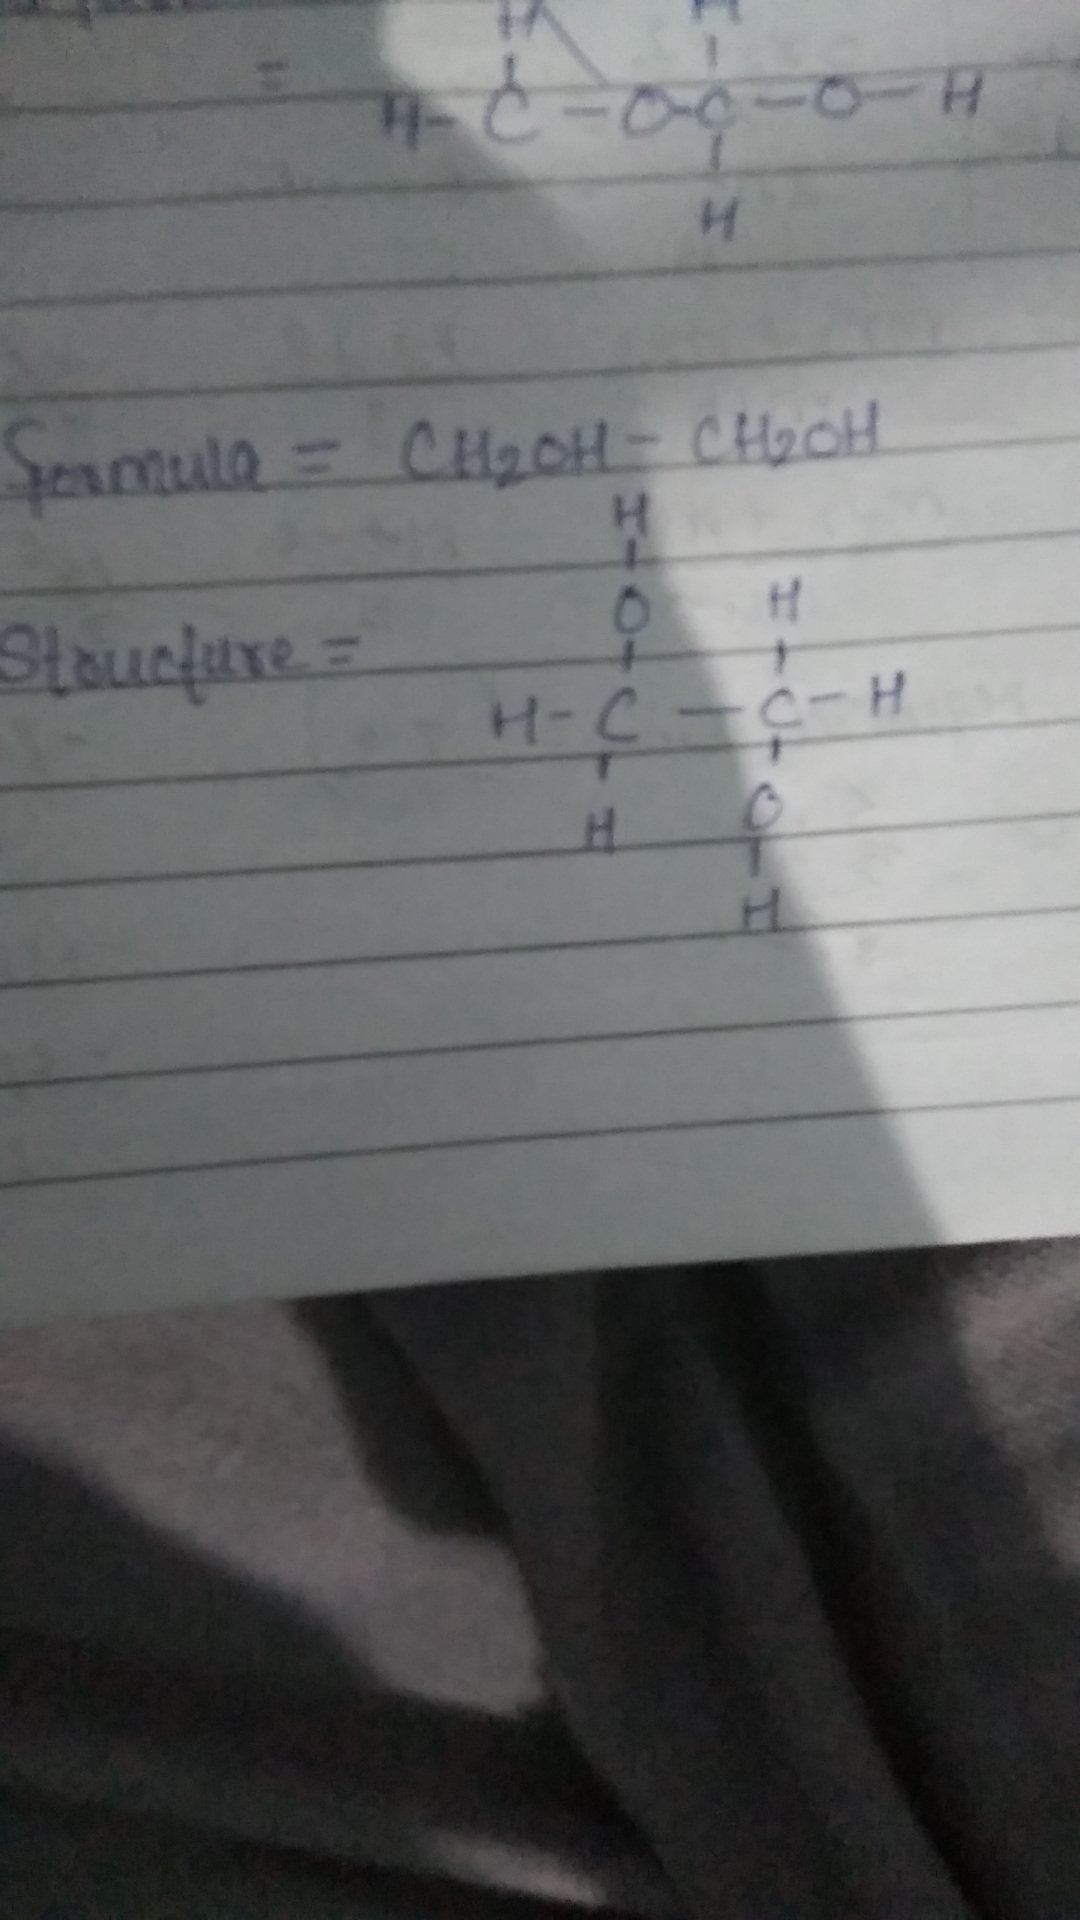 Can You Please Draw The Structure Of Ch2oh Ch2oh